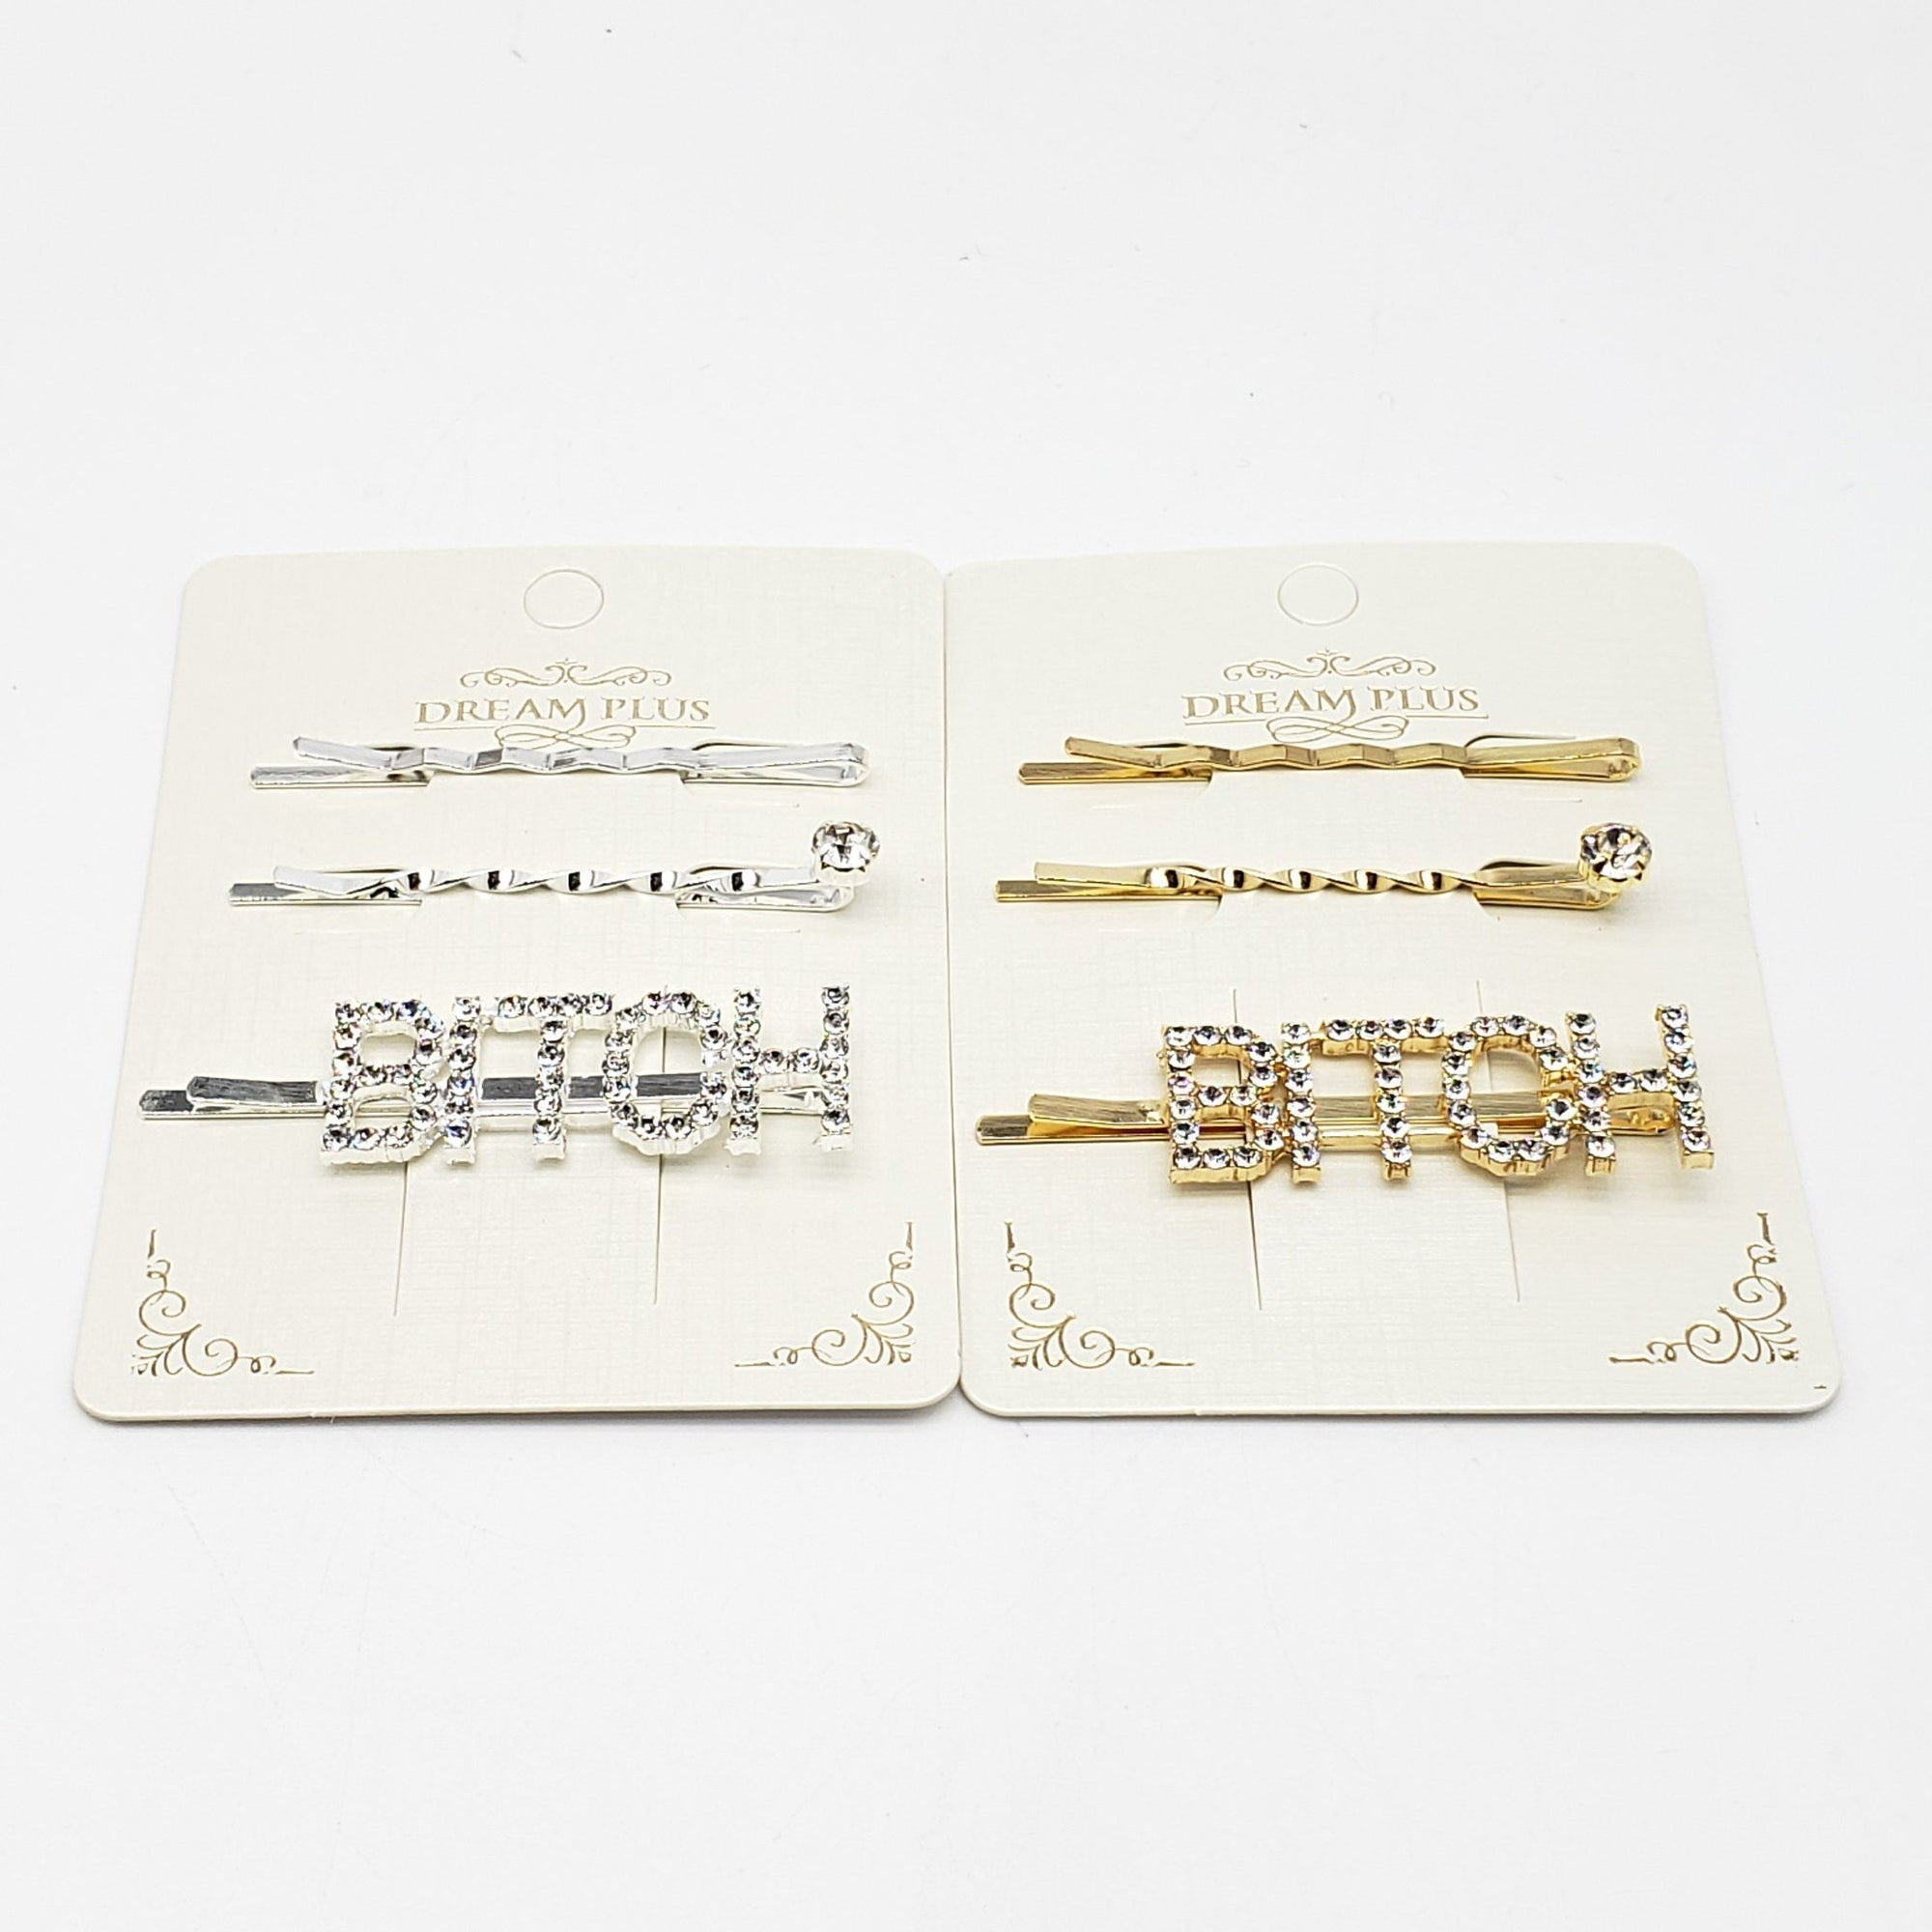 Dream Plus Gold and Silver BXXXH Hair Pins #DHP491GS (12PC)